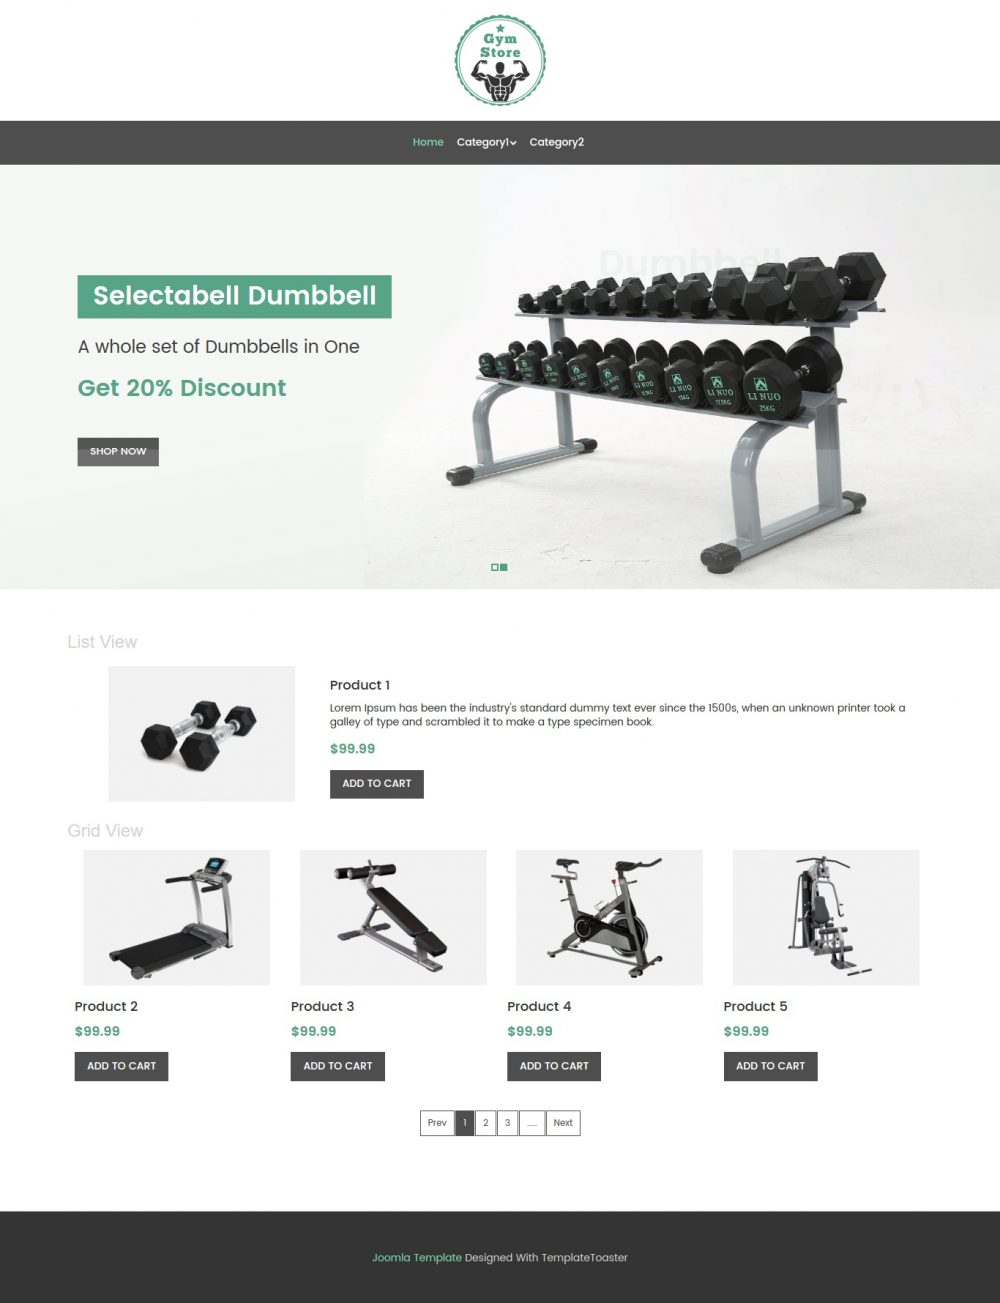 Gym Store Fitness Equipment Shop Virtuemart Template